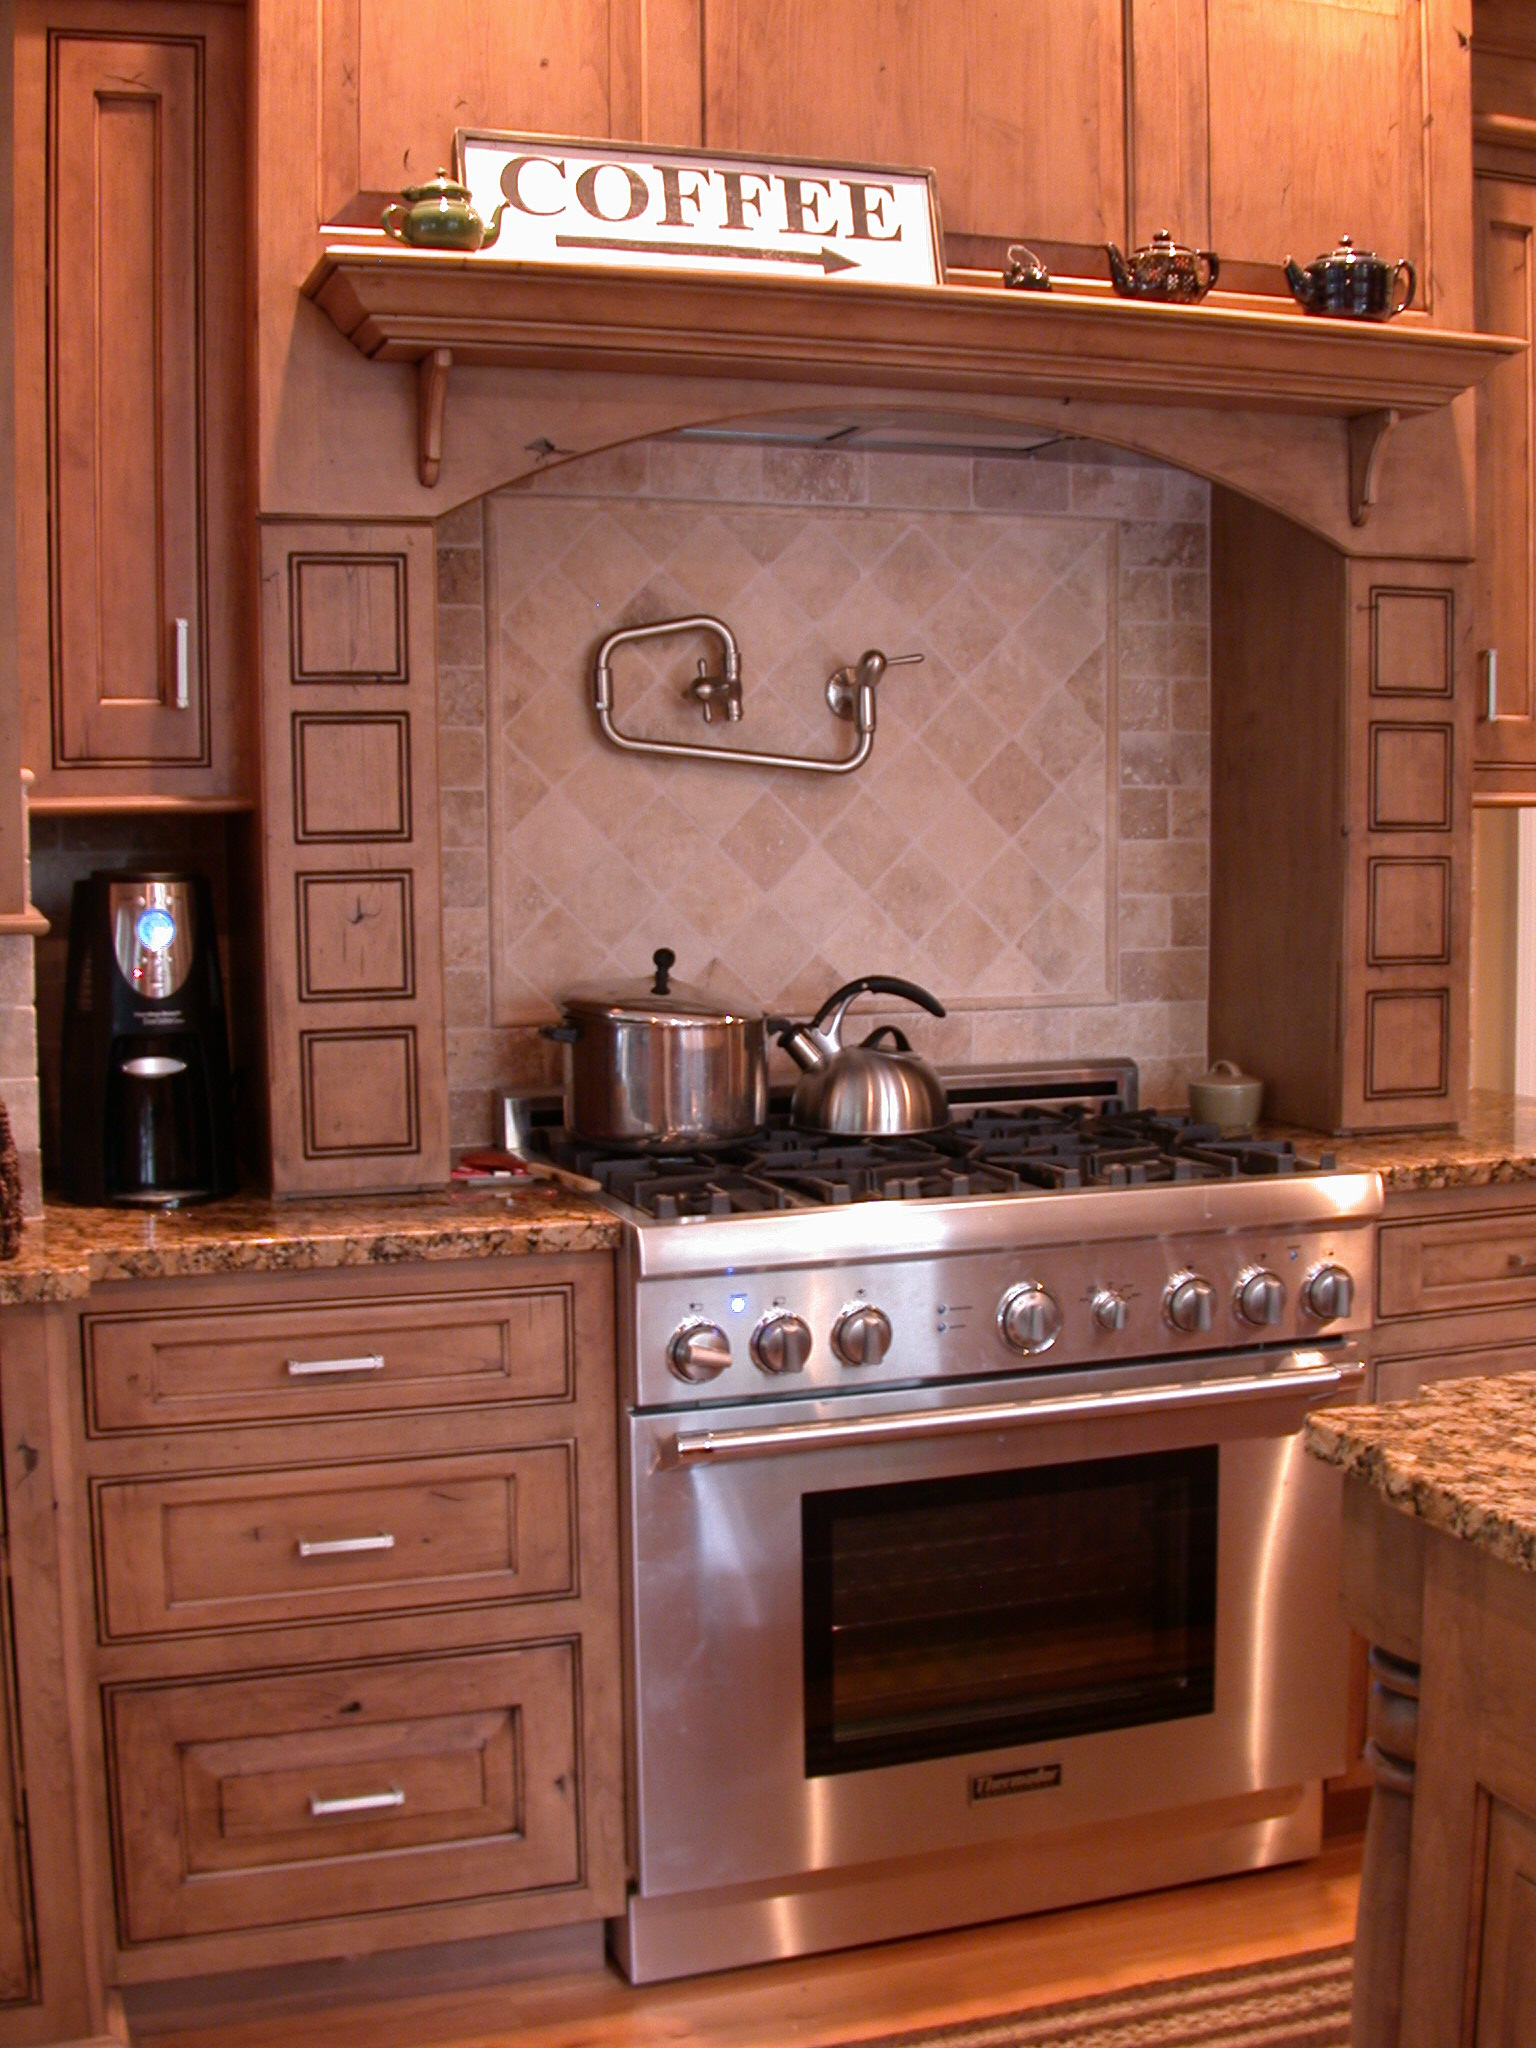 bathroom and kitchen king nj 28 images bathroom and kitchen remodeling new home construction